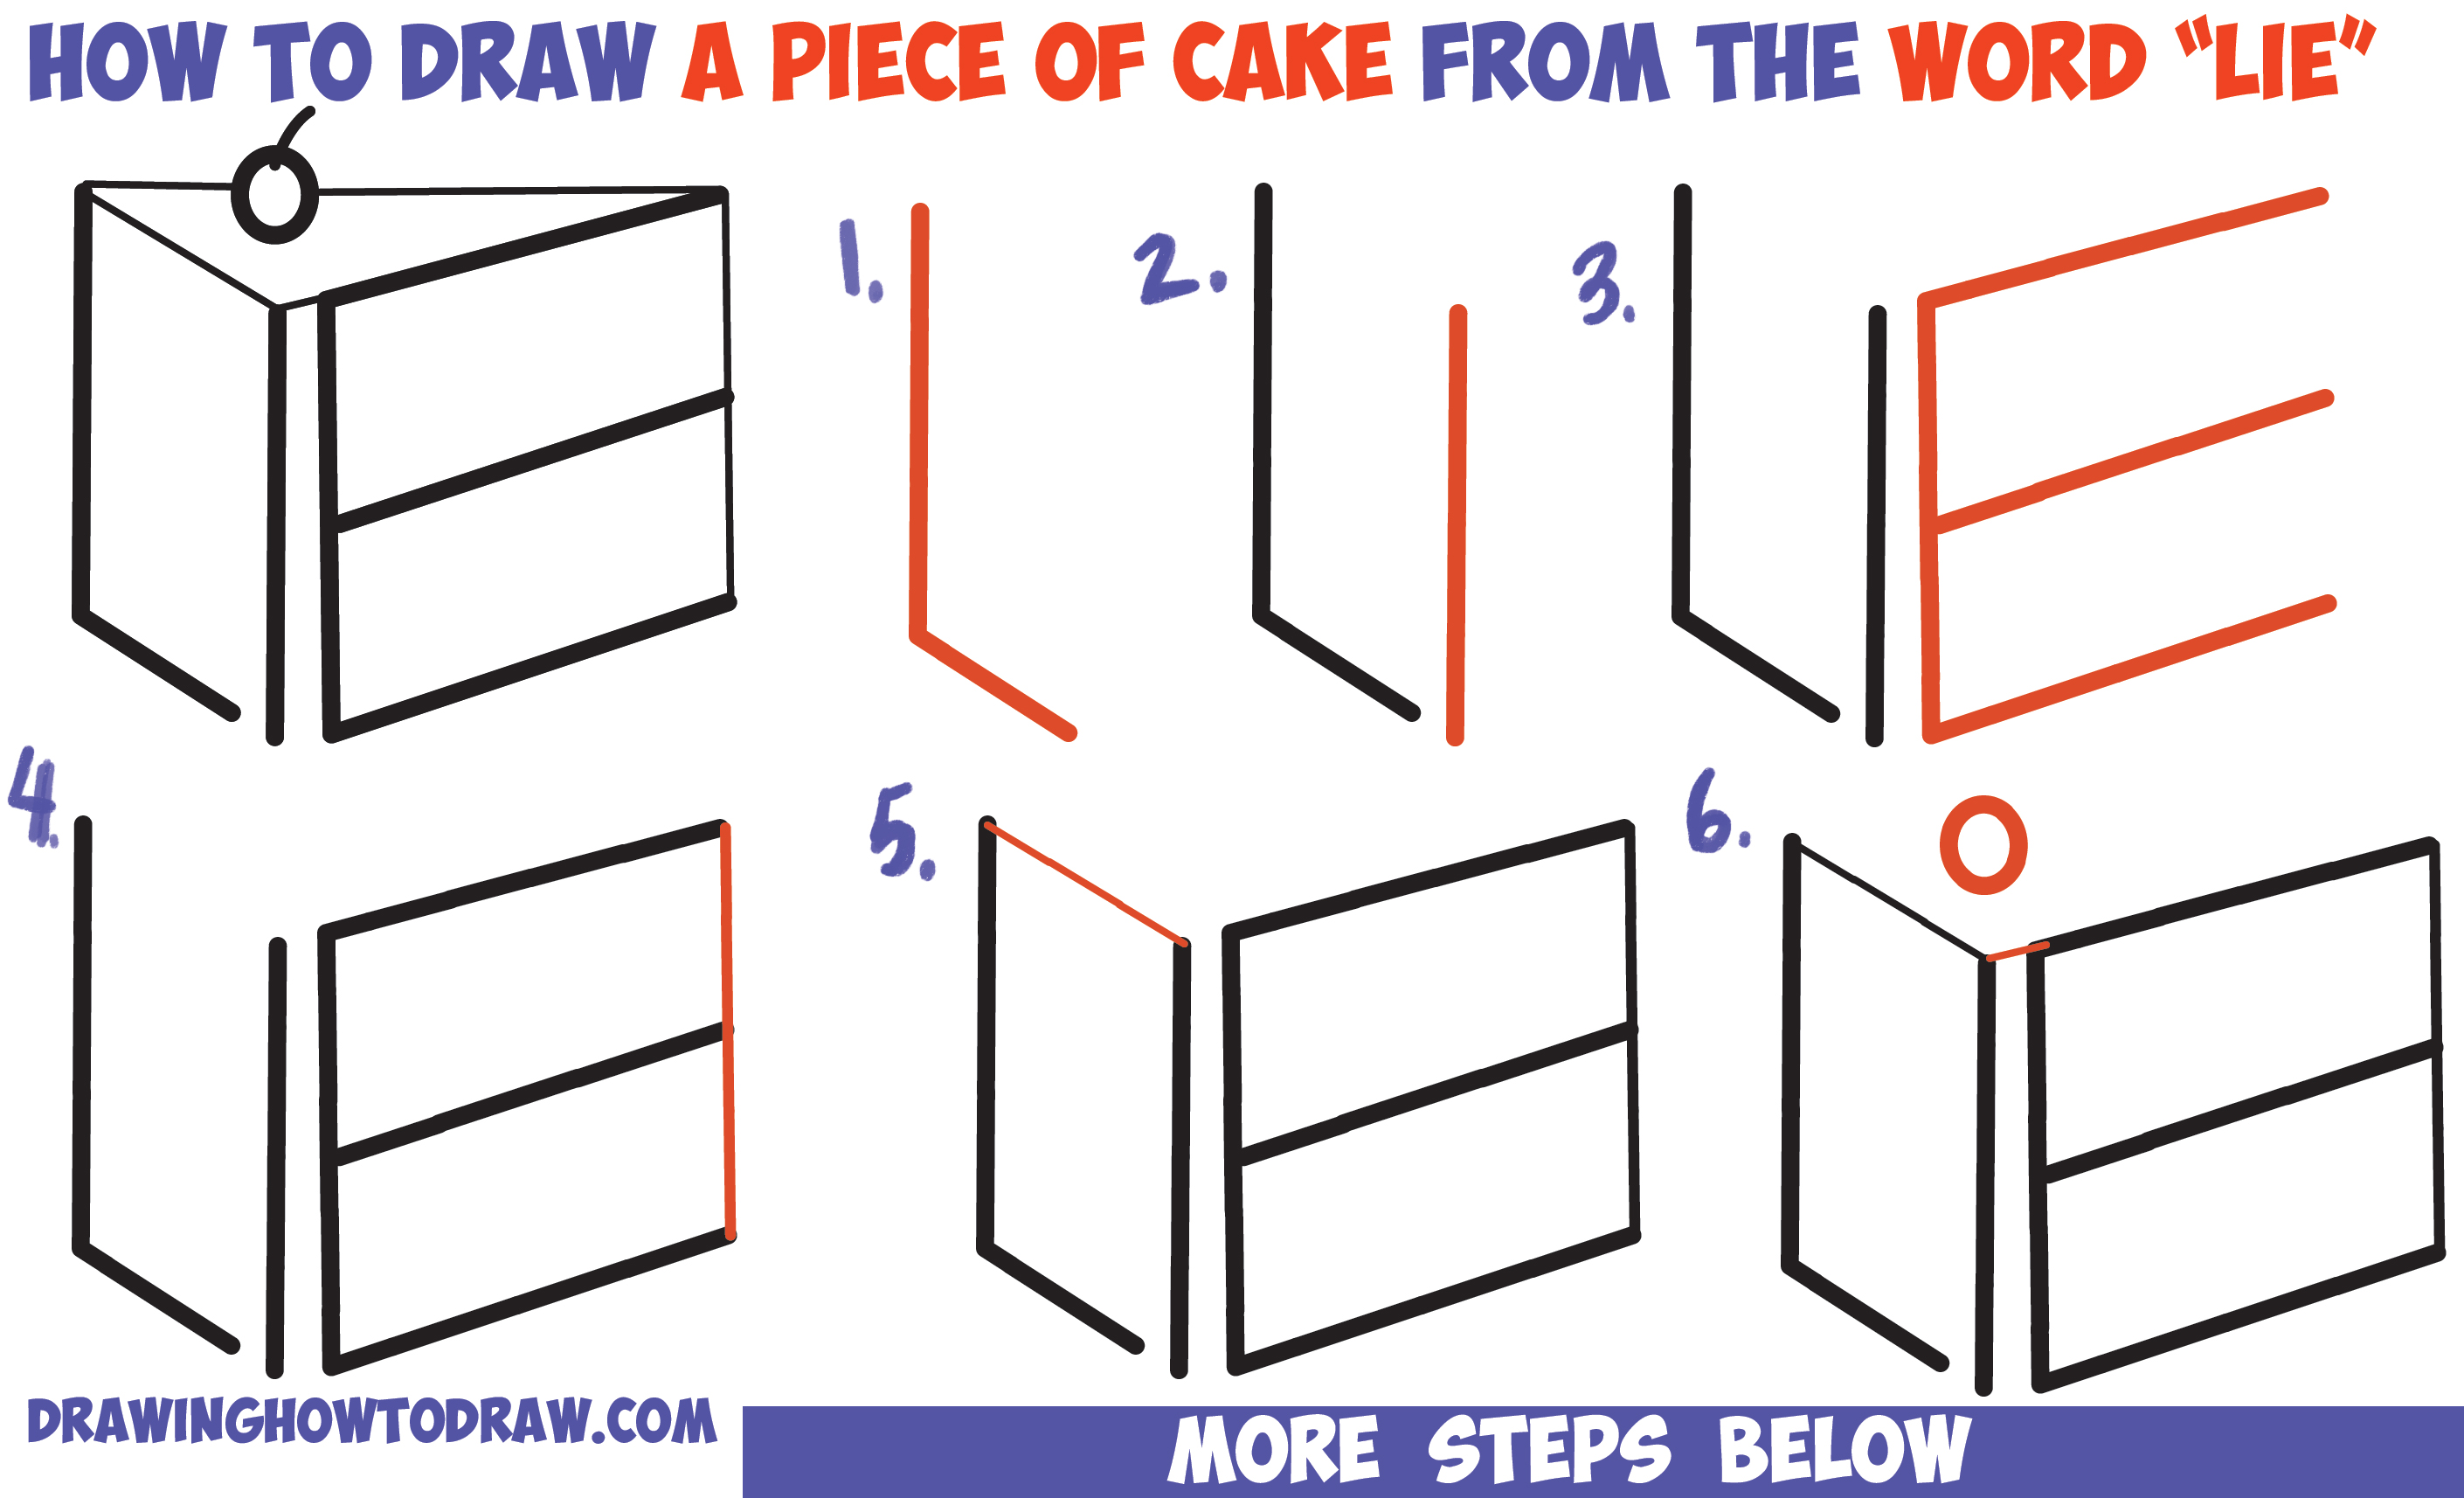 2820x1714 How To Draw A Piece Of Cake From The Word Lie For A Silly Joke